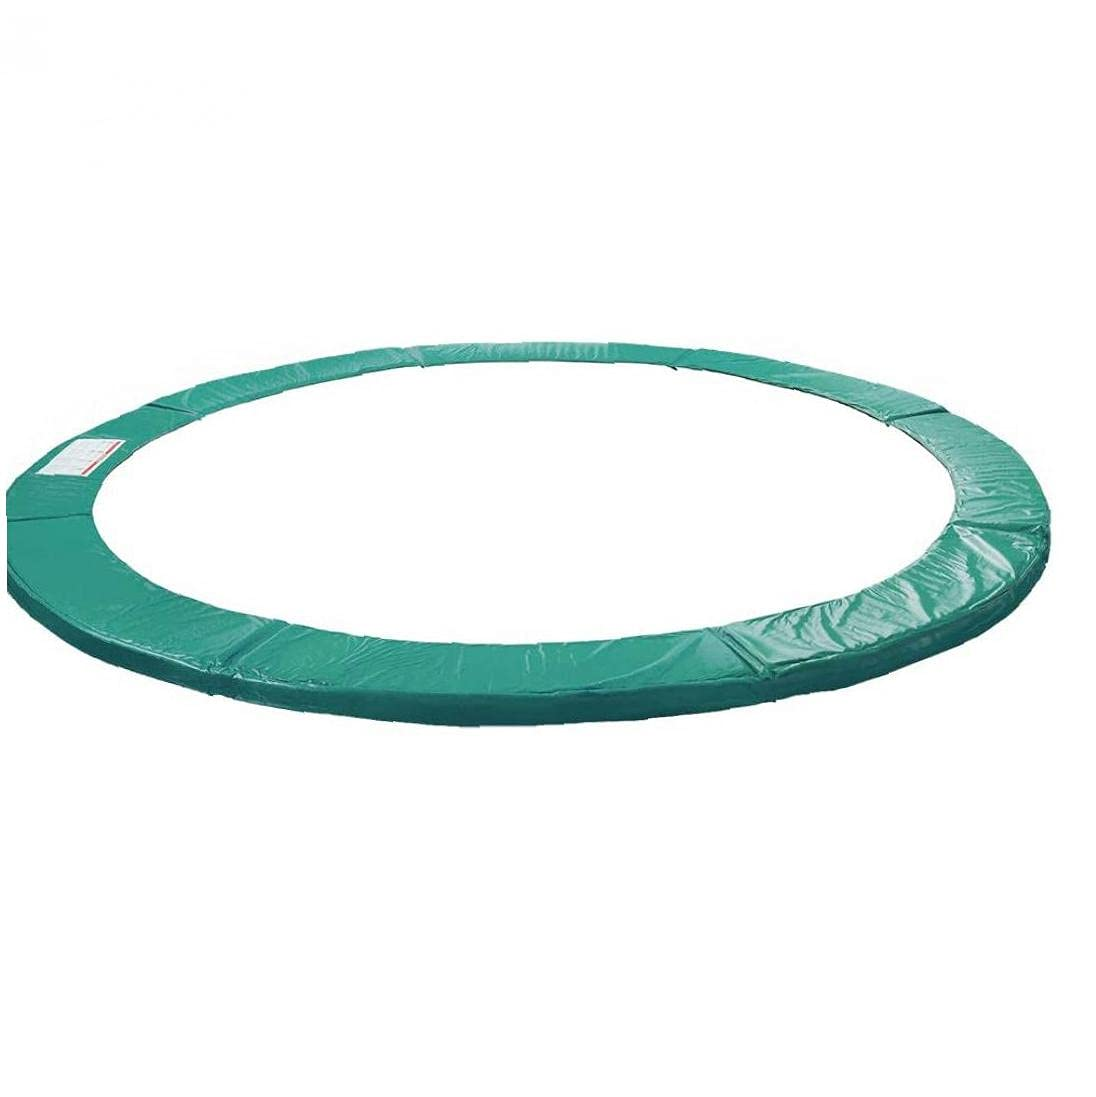 Trampoline Pad Surround Foam unisex Safety Spring Guard New life Cov Replacement